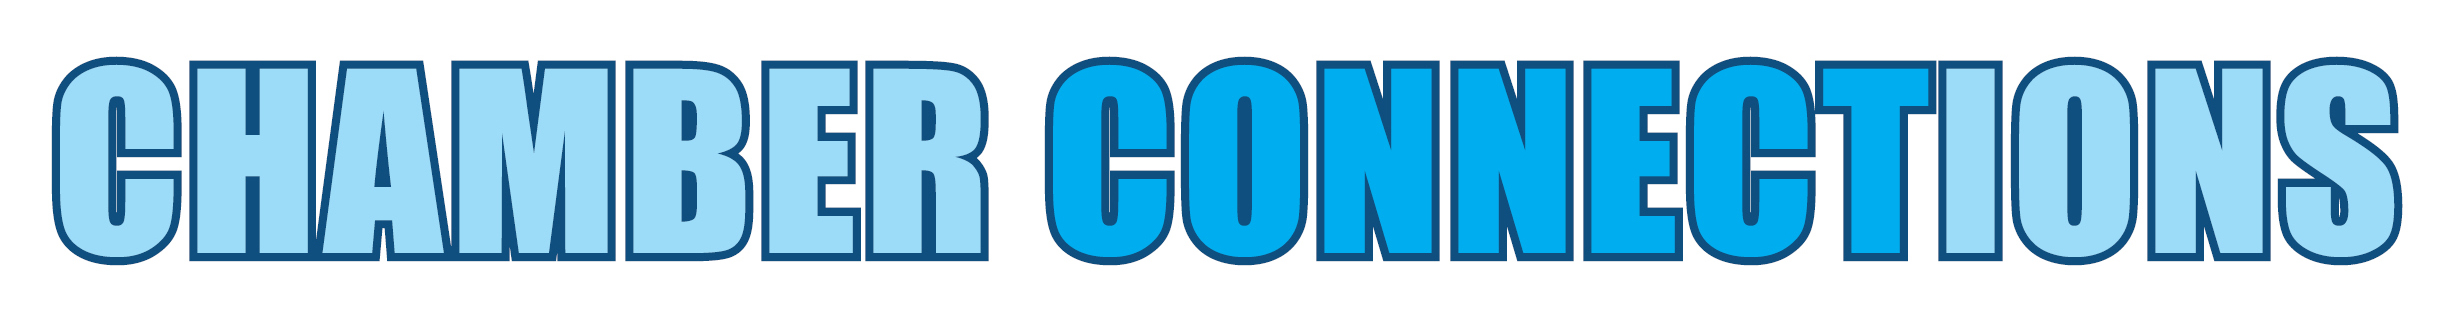 Chamber Connections logo